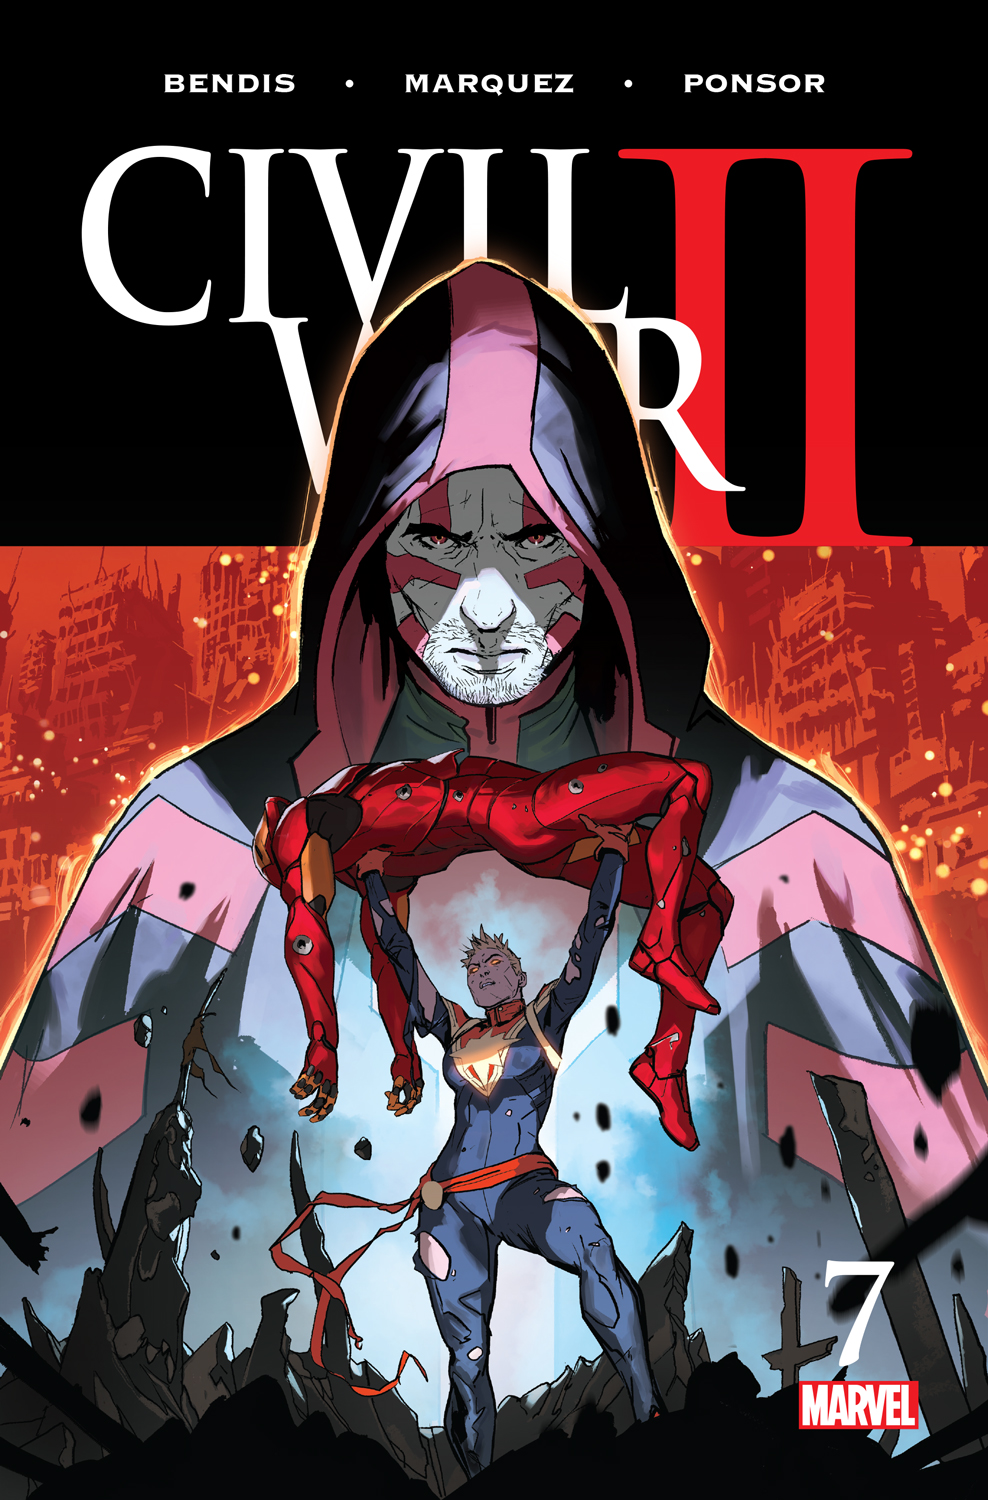 Marvel Preview: Civil War II #7 Covers